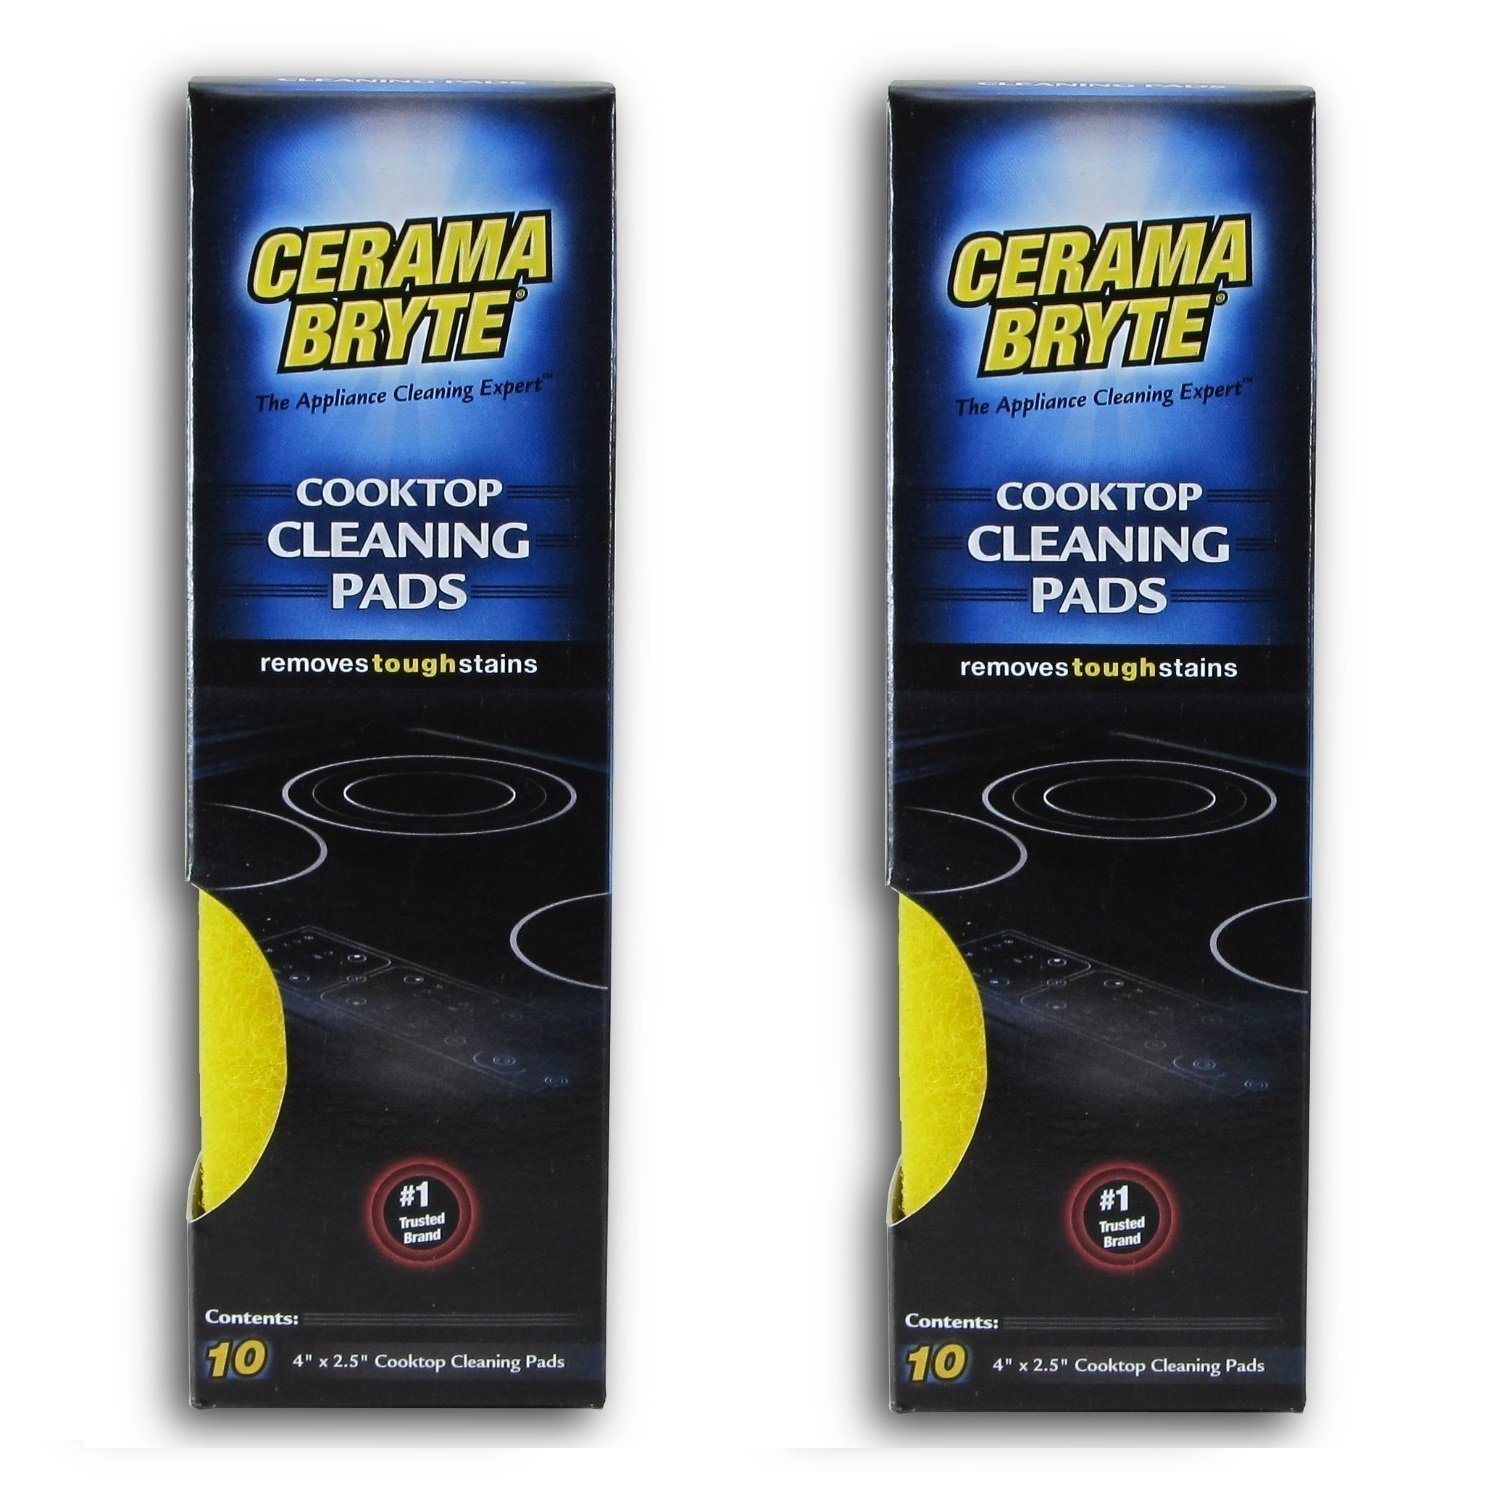 Cerama Bryte Cooktop Cleaning Pads, 10-Count 2 Pack